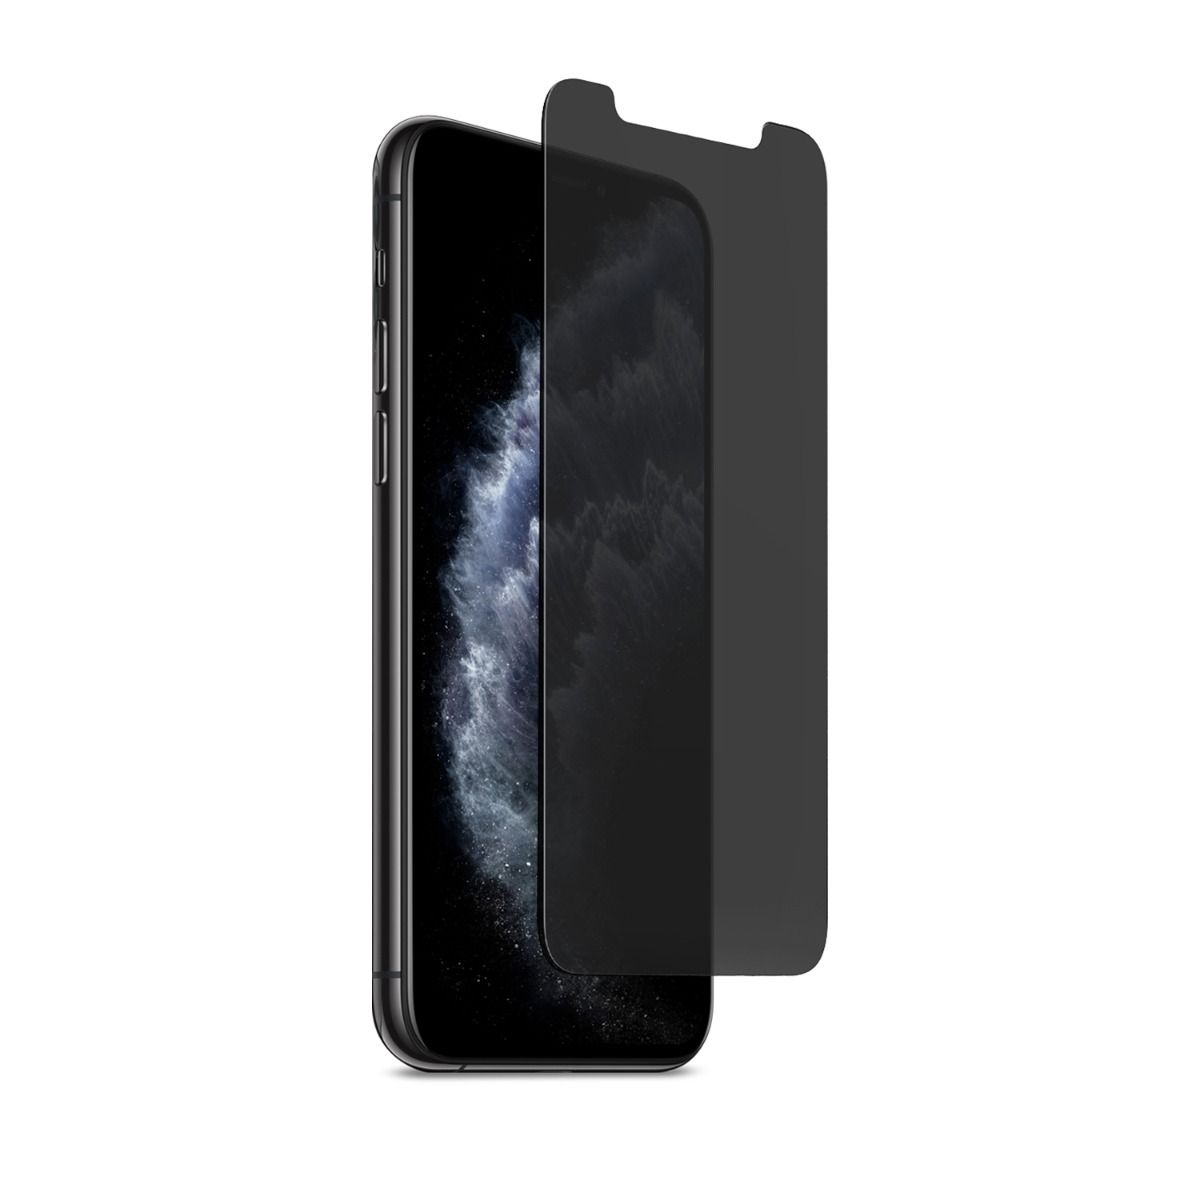 Apple iPhone 11 Pro 2-Way Privacy Glass Screen Protector with Alignment Tray